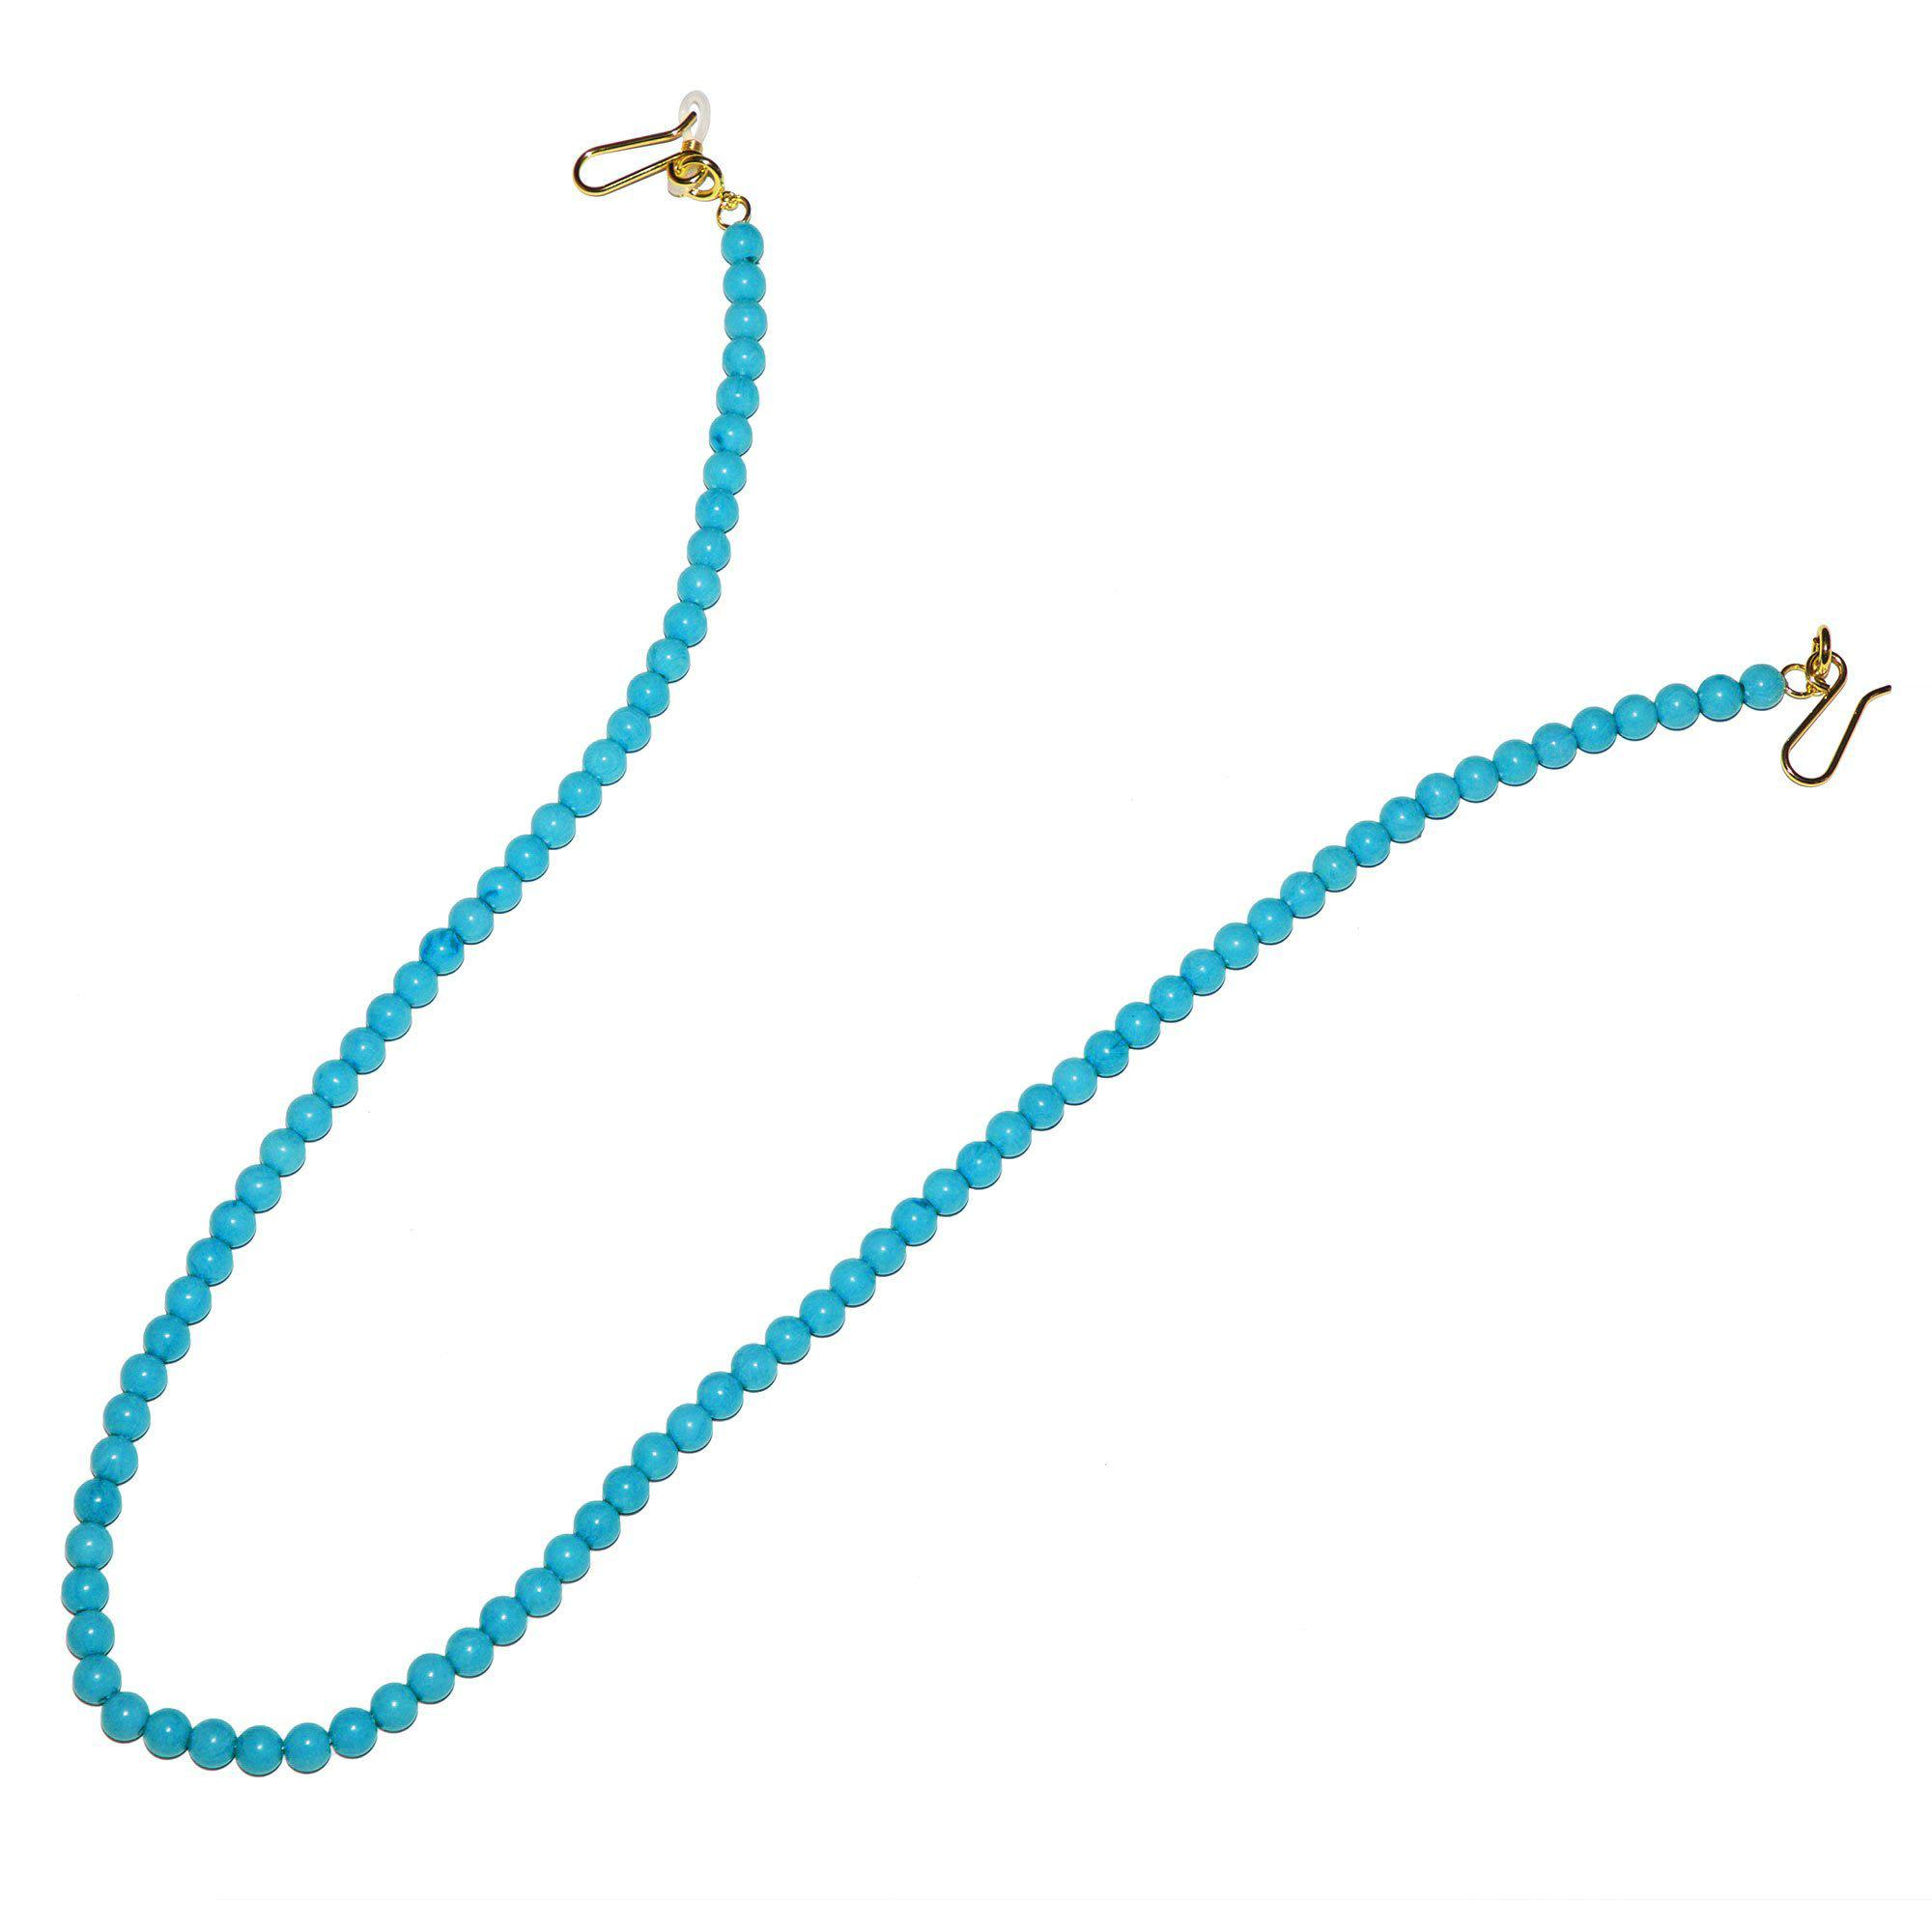 TURQUOISE BEADED SUNGLASS AND FACE MASK CHAIN